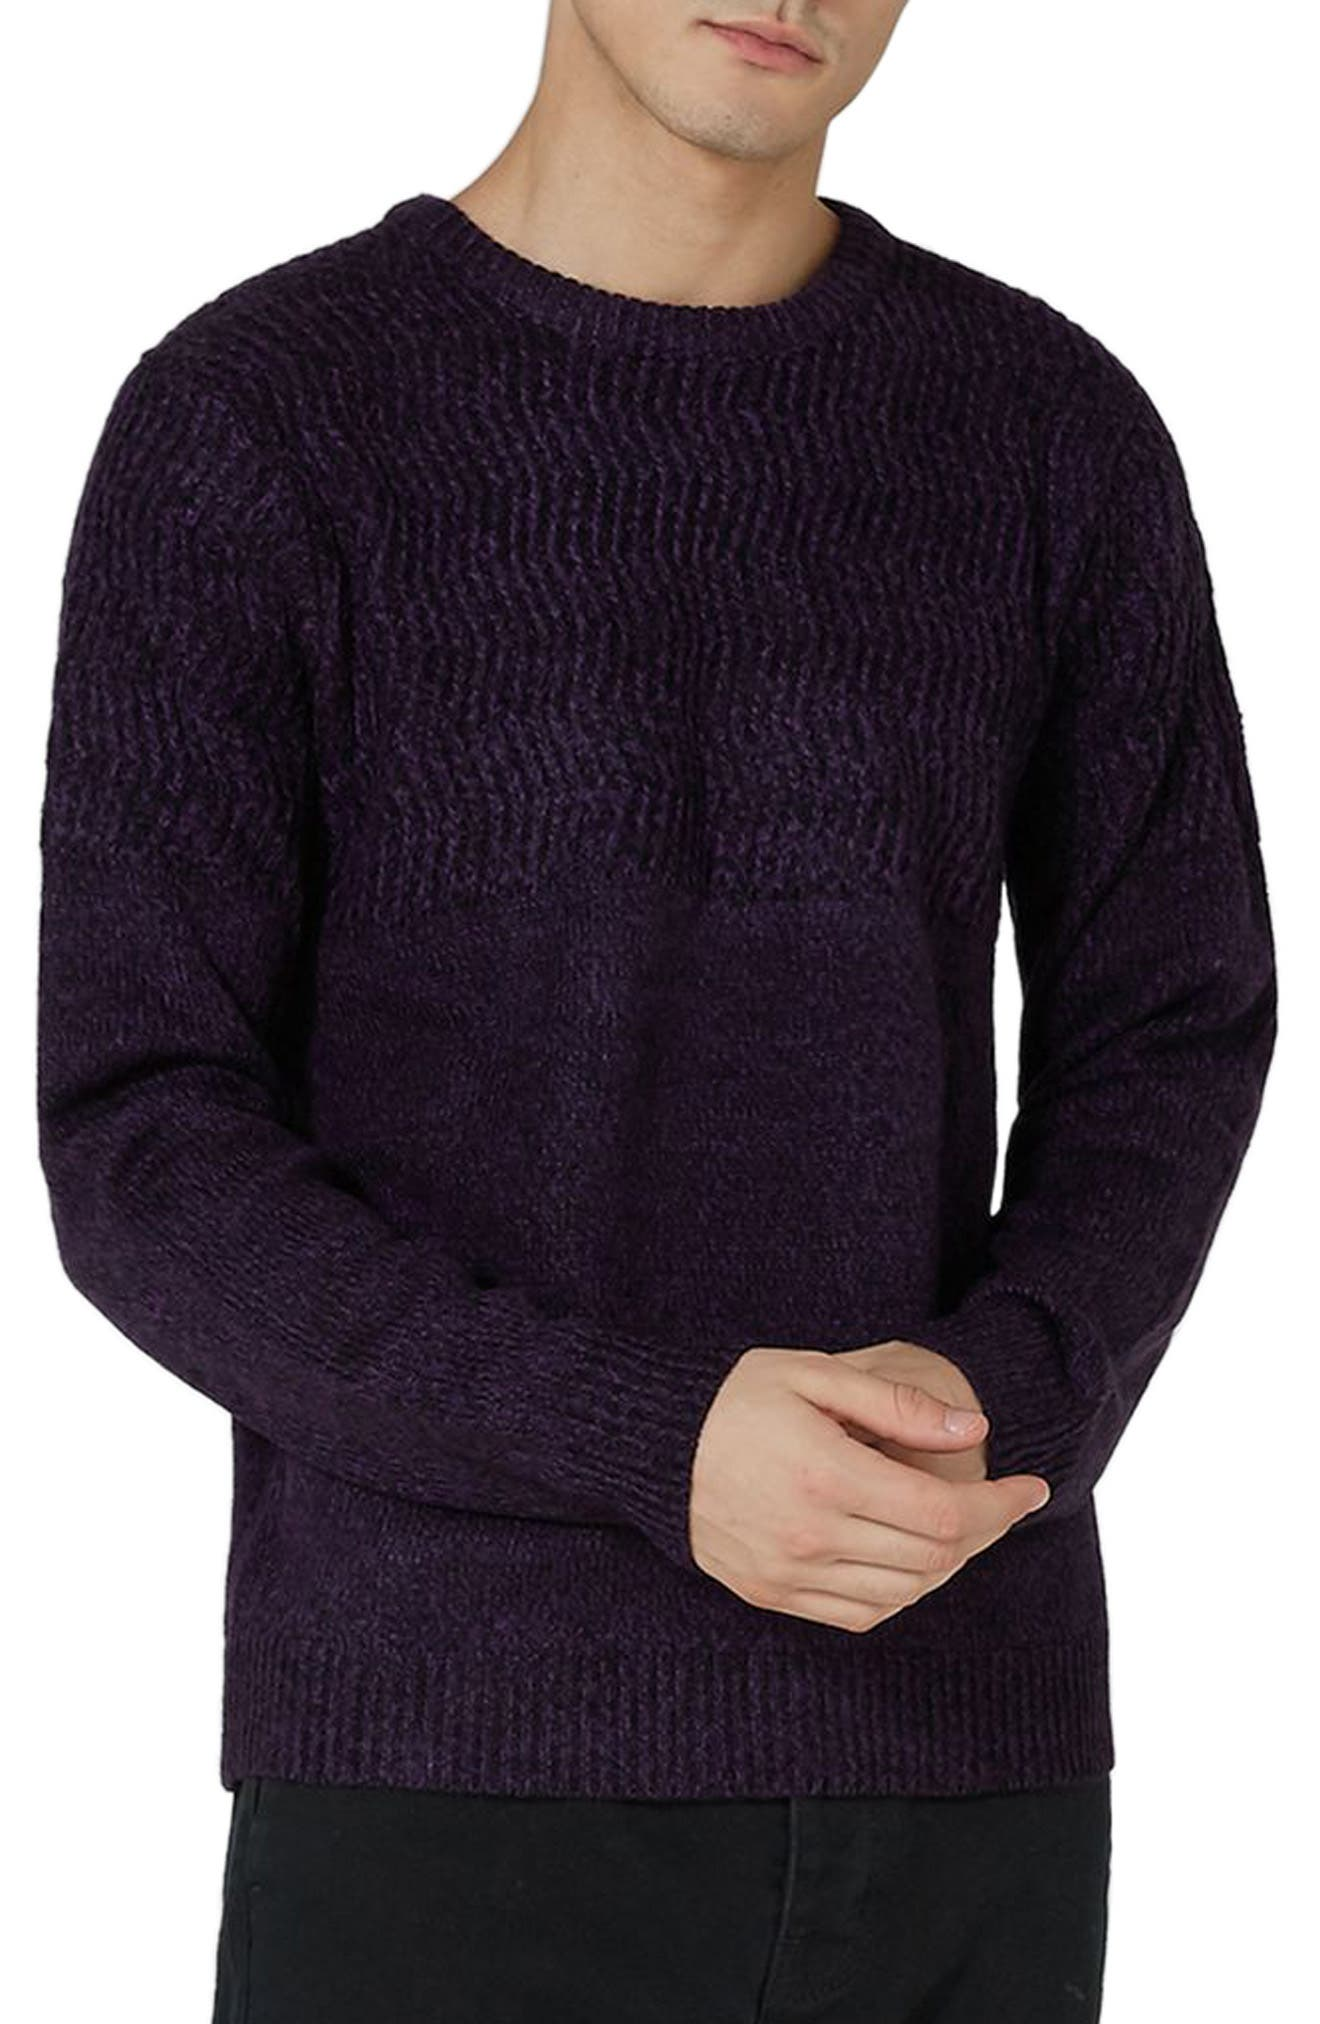 Topman Zigzag Sweater